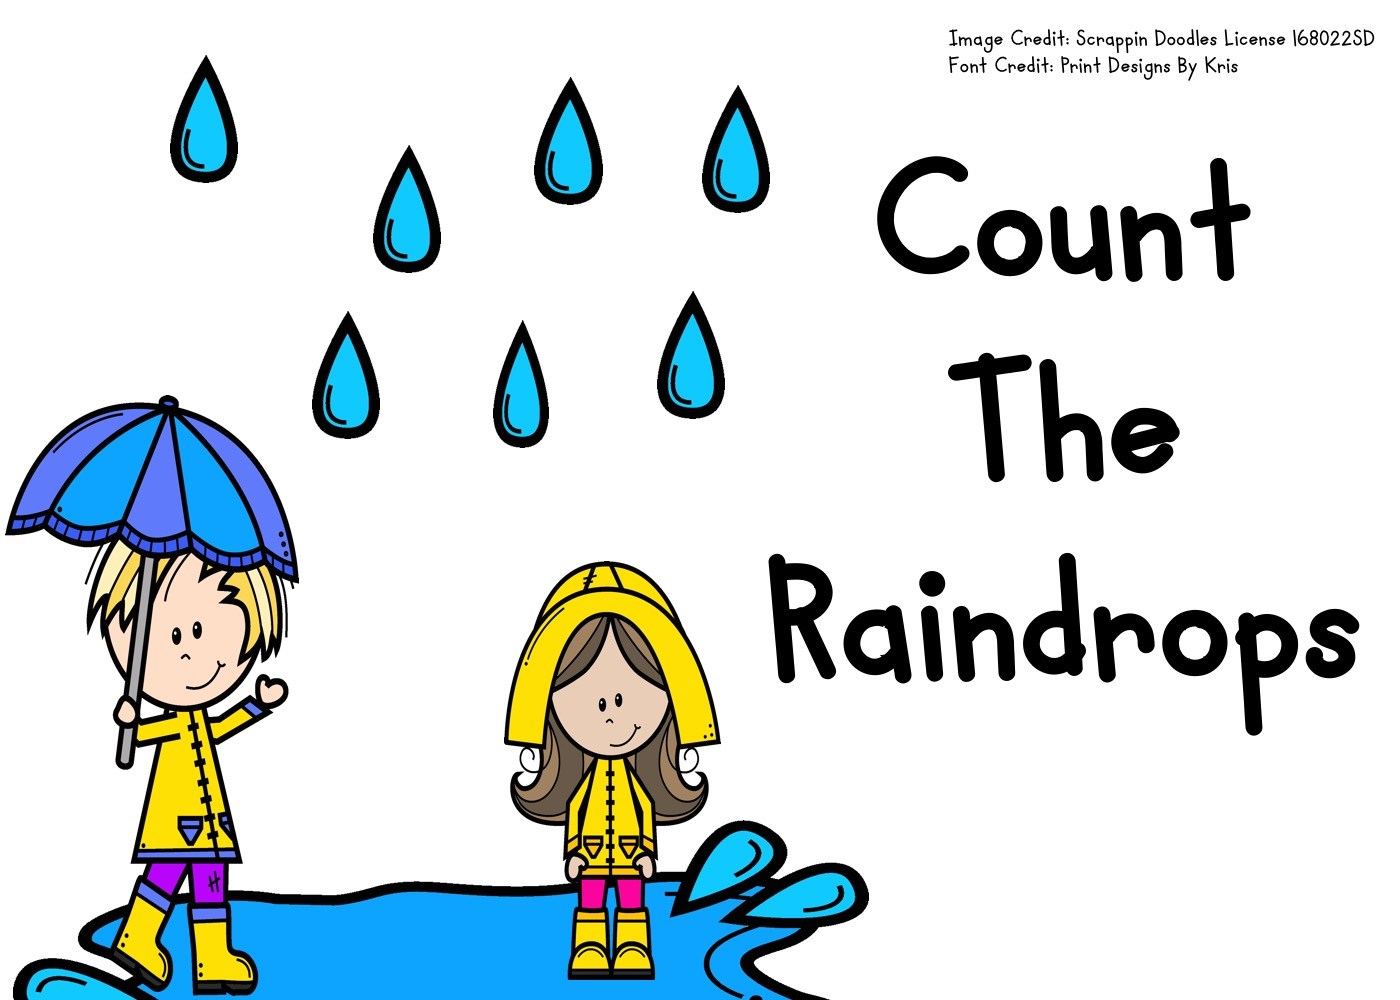 Count The Raindrops 1-10